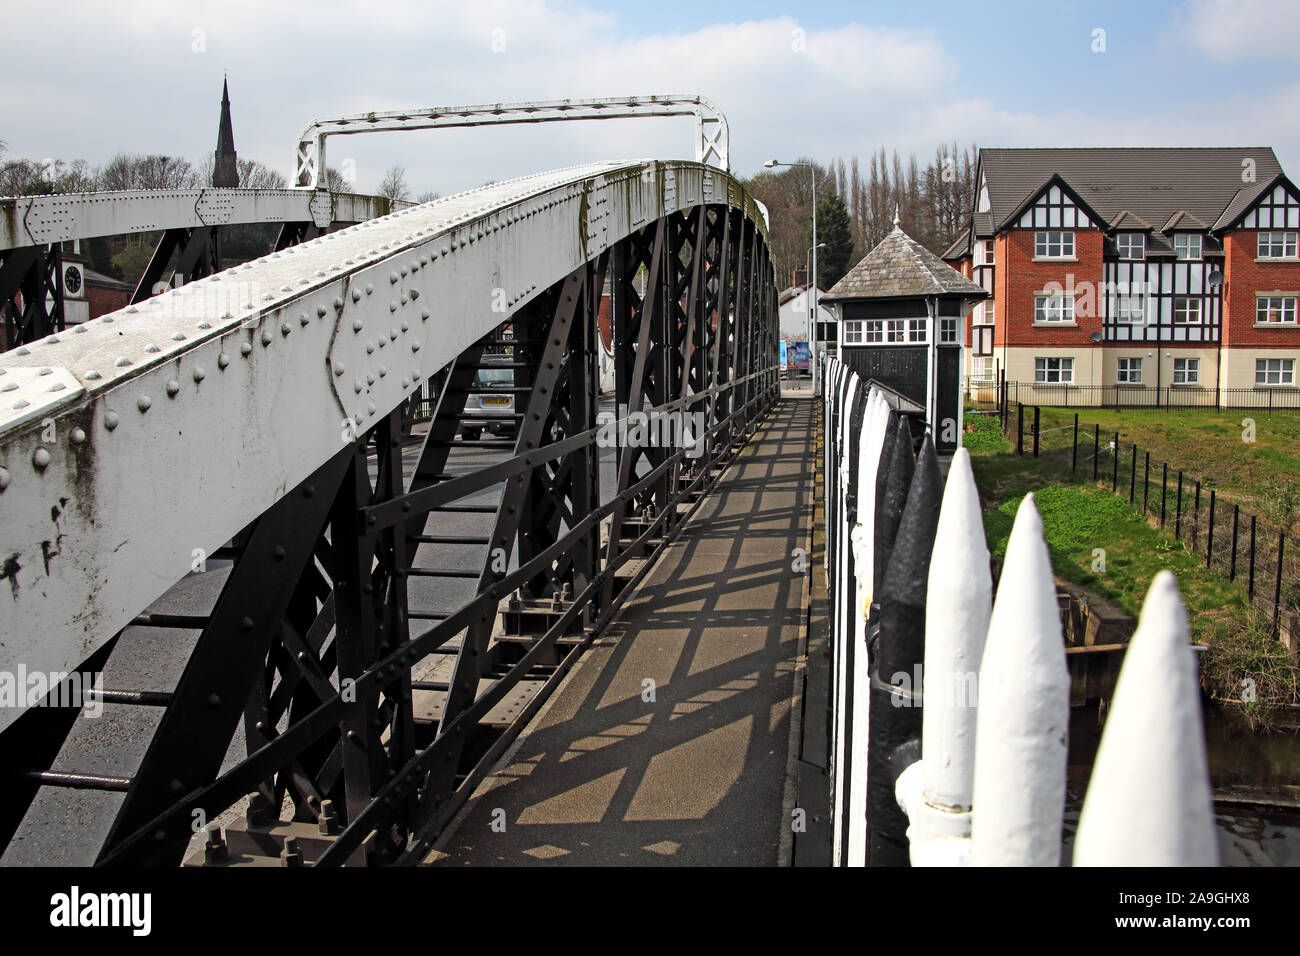 Footway over Northwich Chester Way South Swing Bridge over the River Weaver, Cheshire, North West England, UK, CW8 1AL Stock Photo